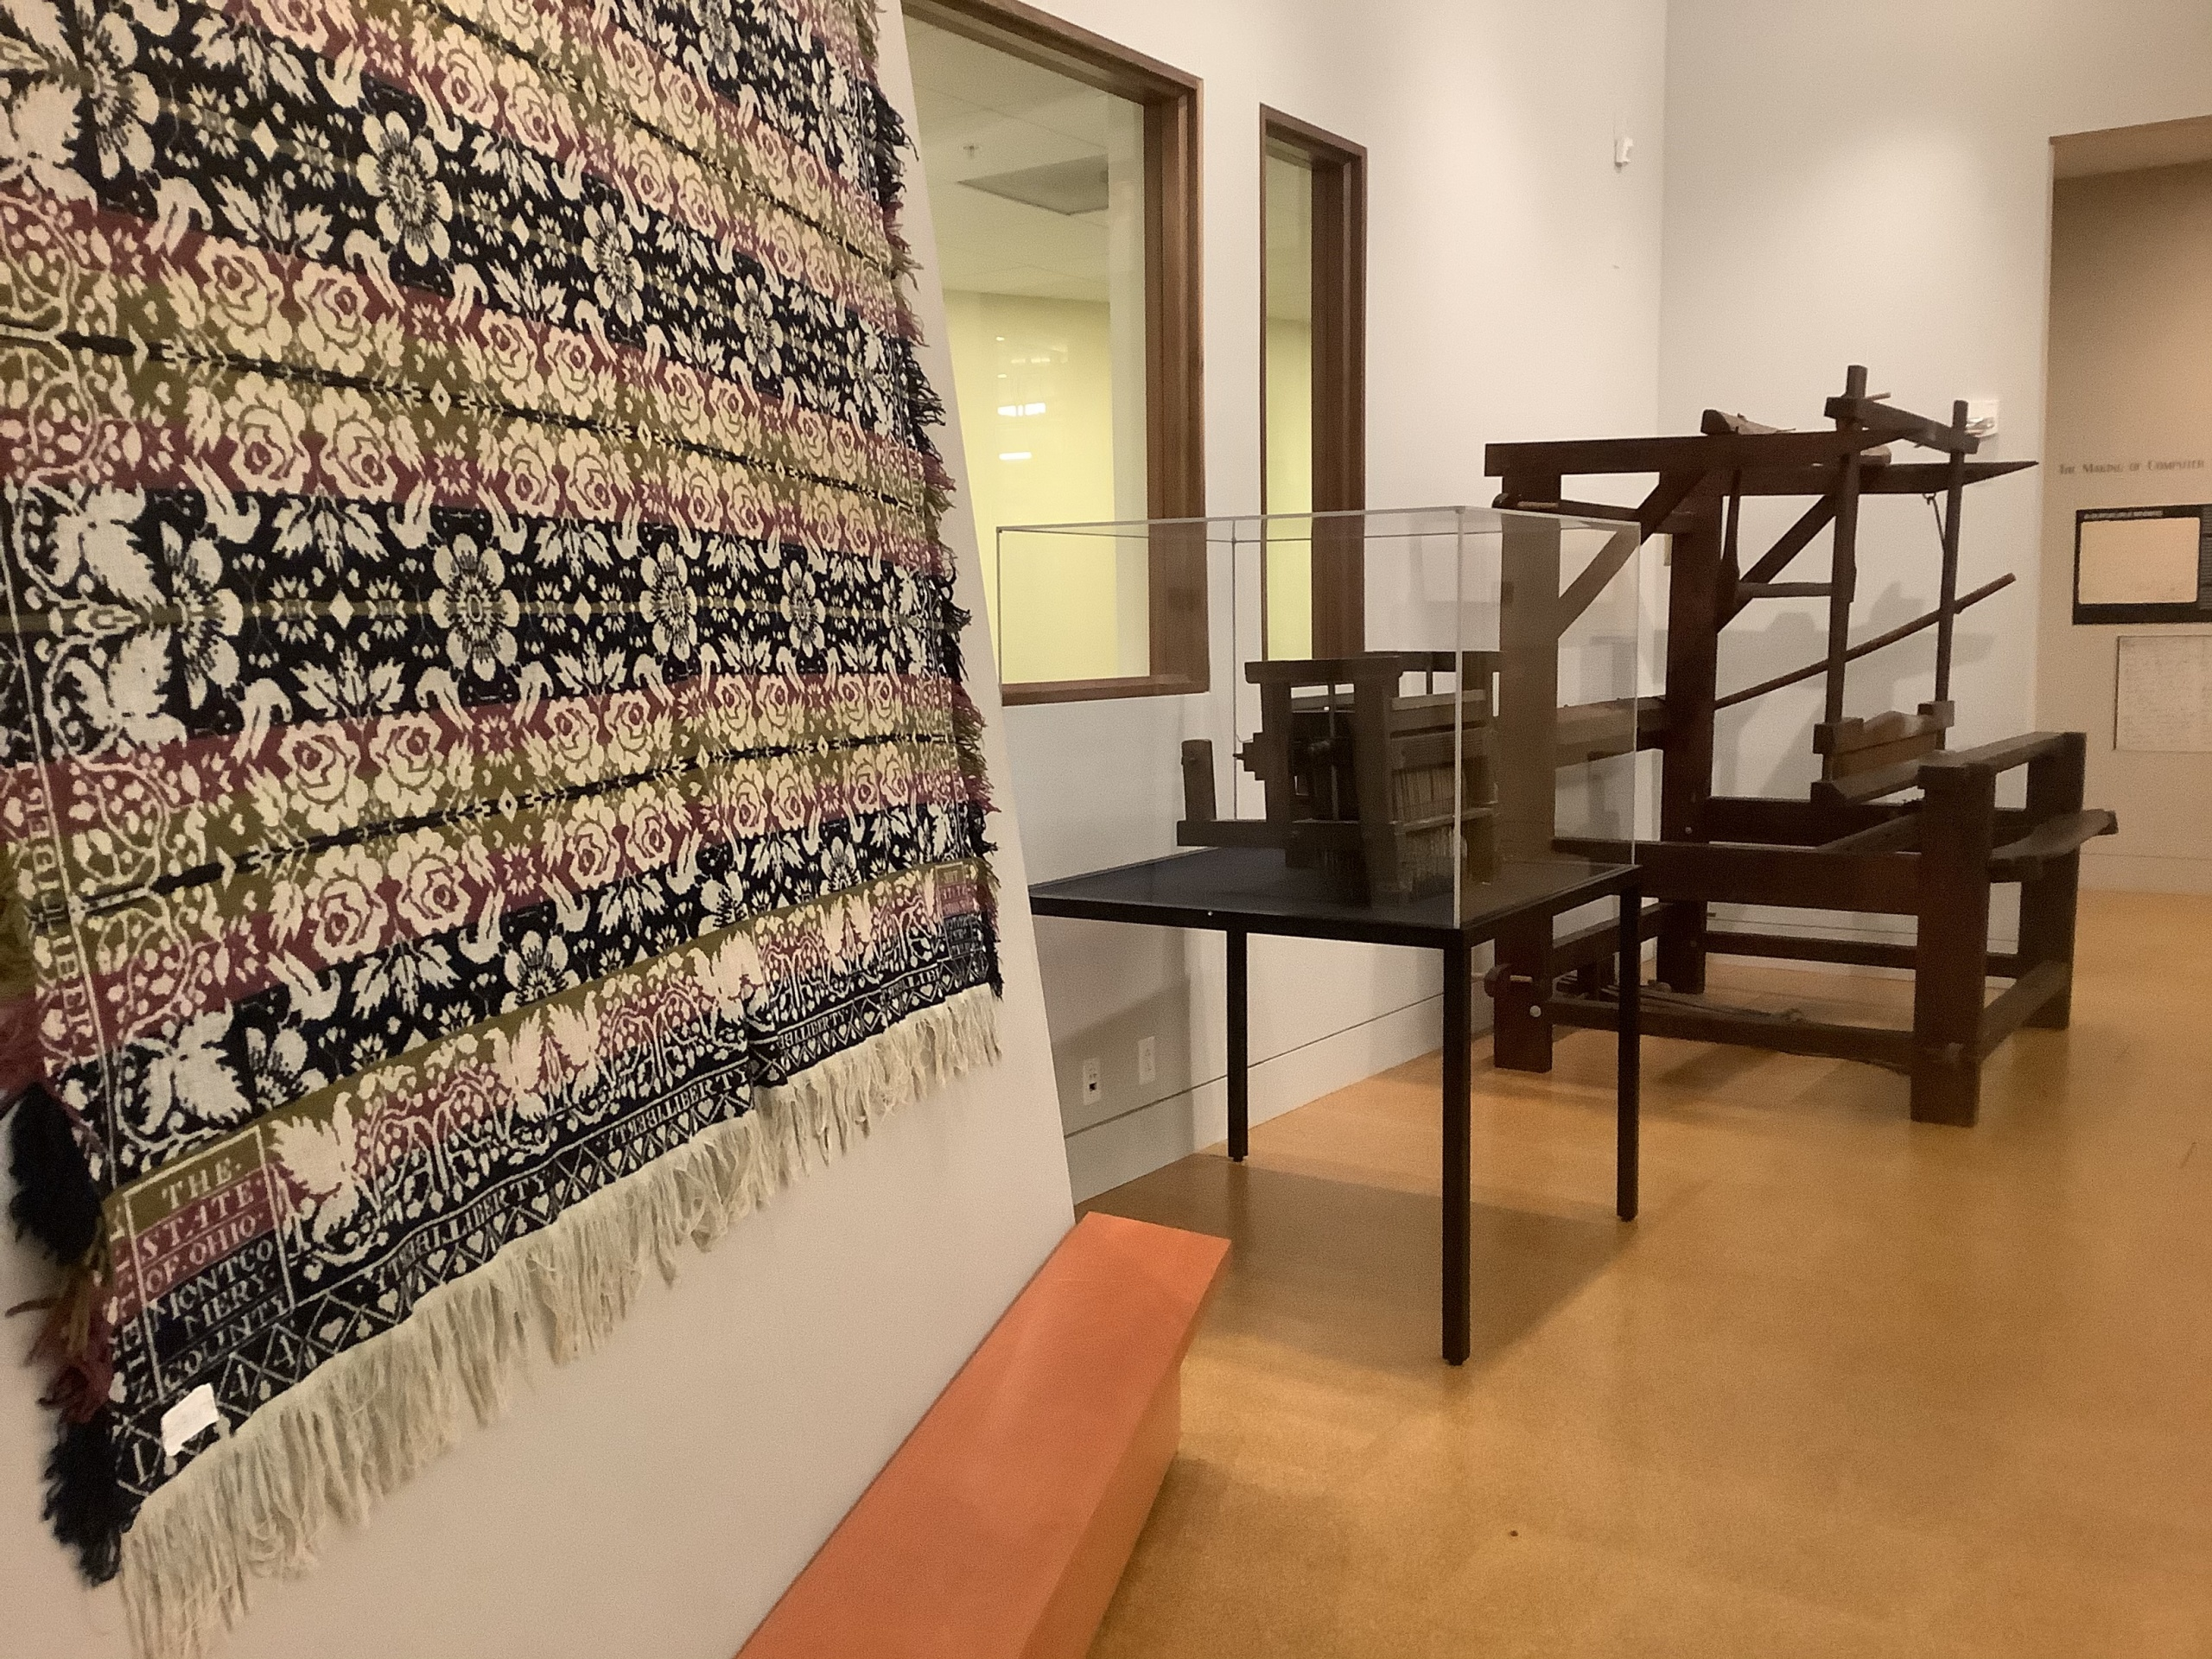 Exhibit with coverlets and loom at McCarl Gallery